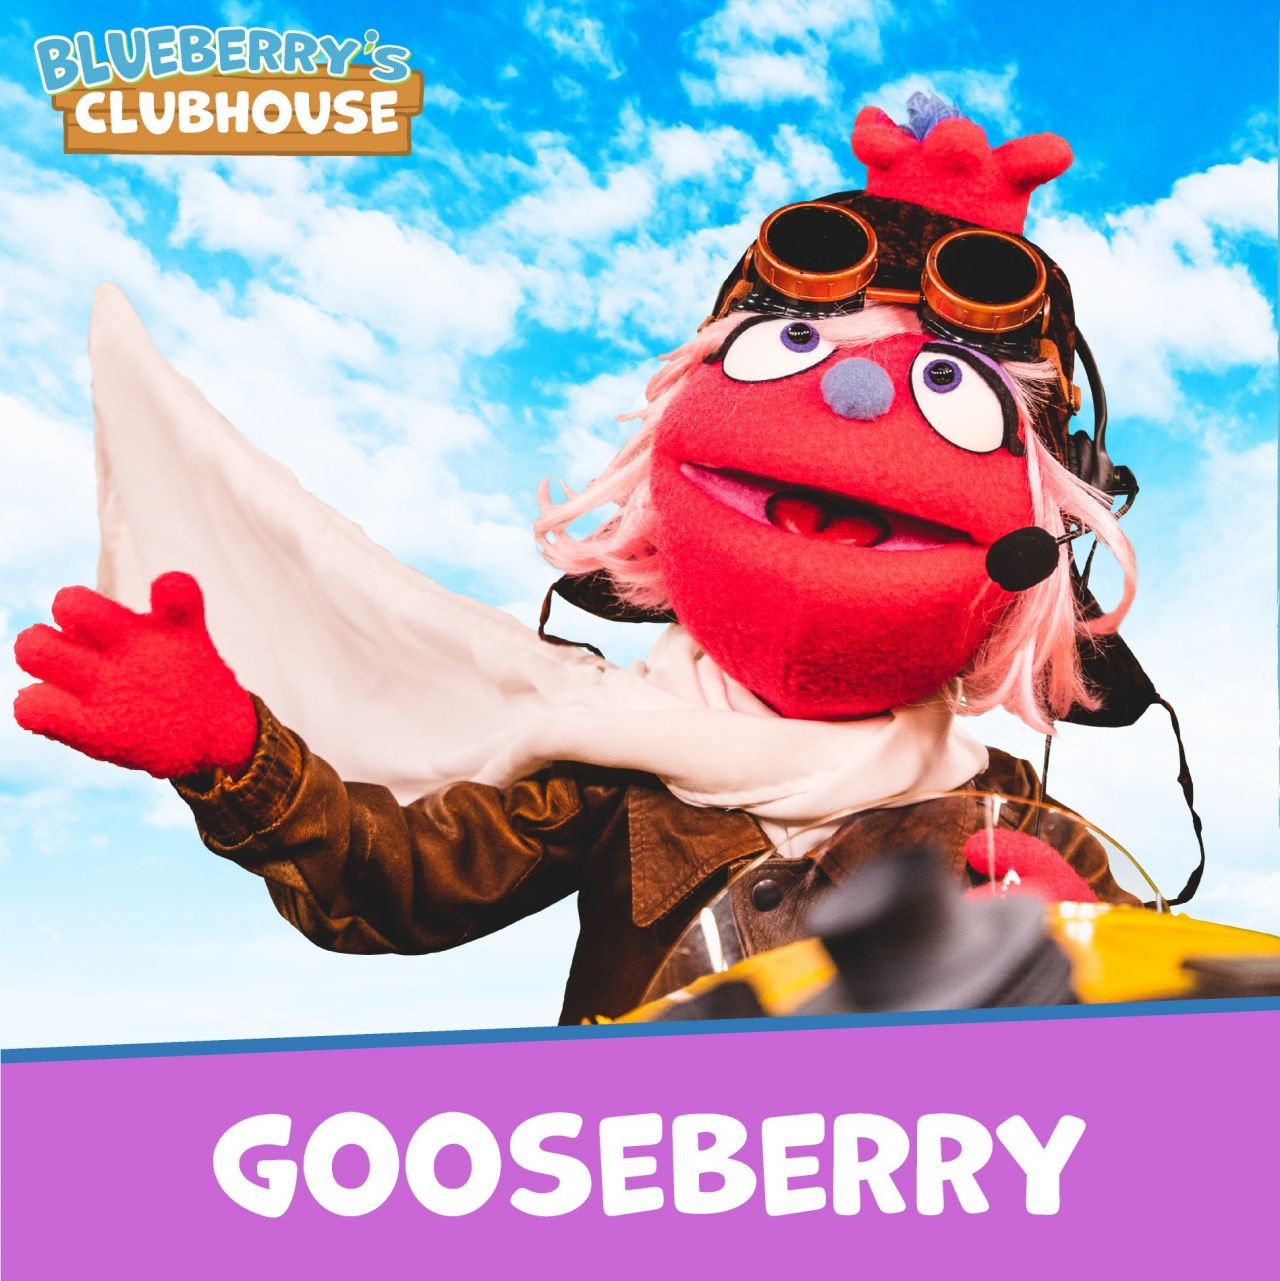 Boysenberry, wearing an aviator jacket, scarf and googles, as well as headset with speaker, waves to the camera